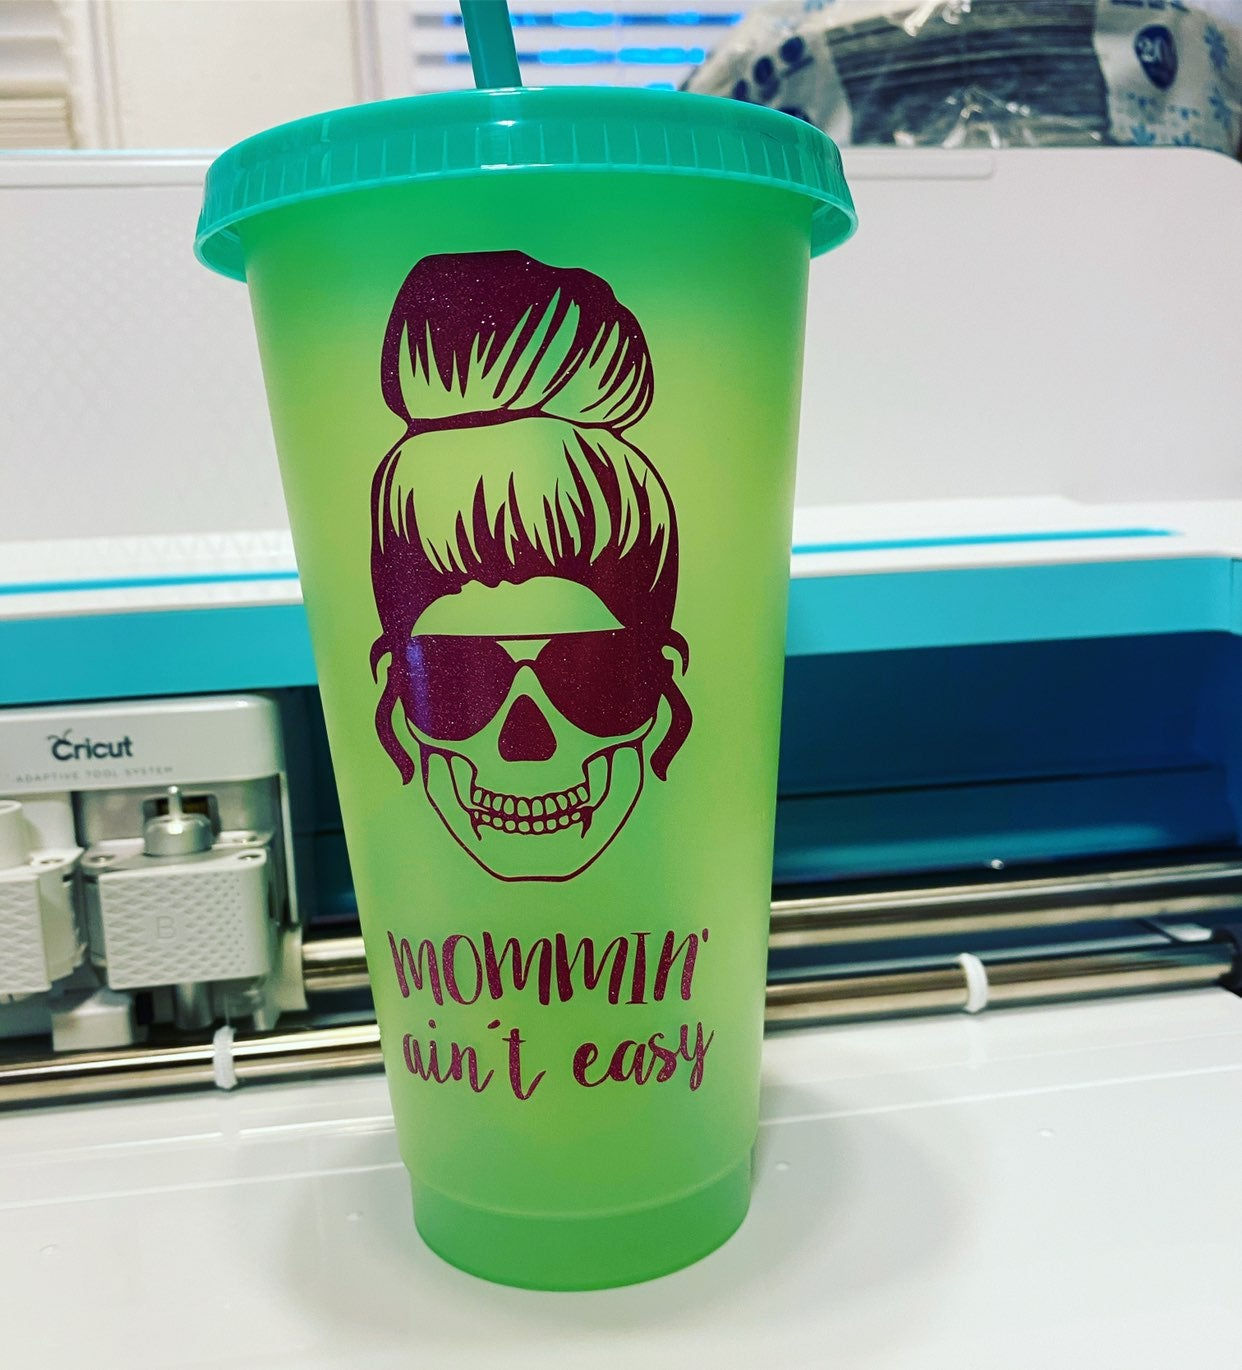 New hand crafted cup